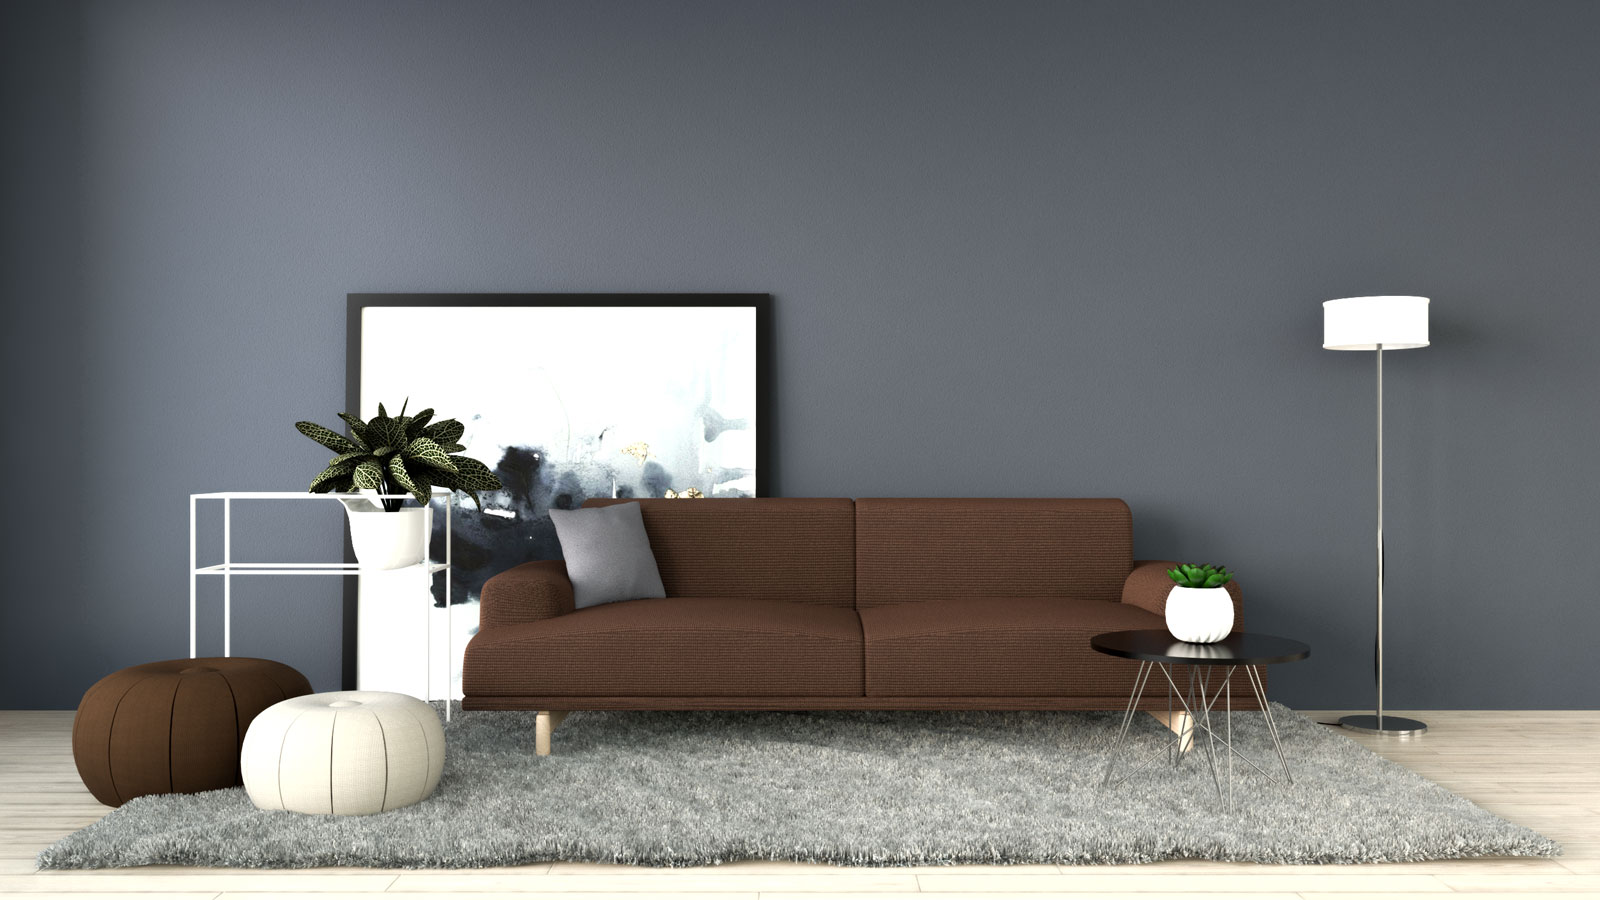 Dark gray/mineral gray with brown couch